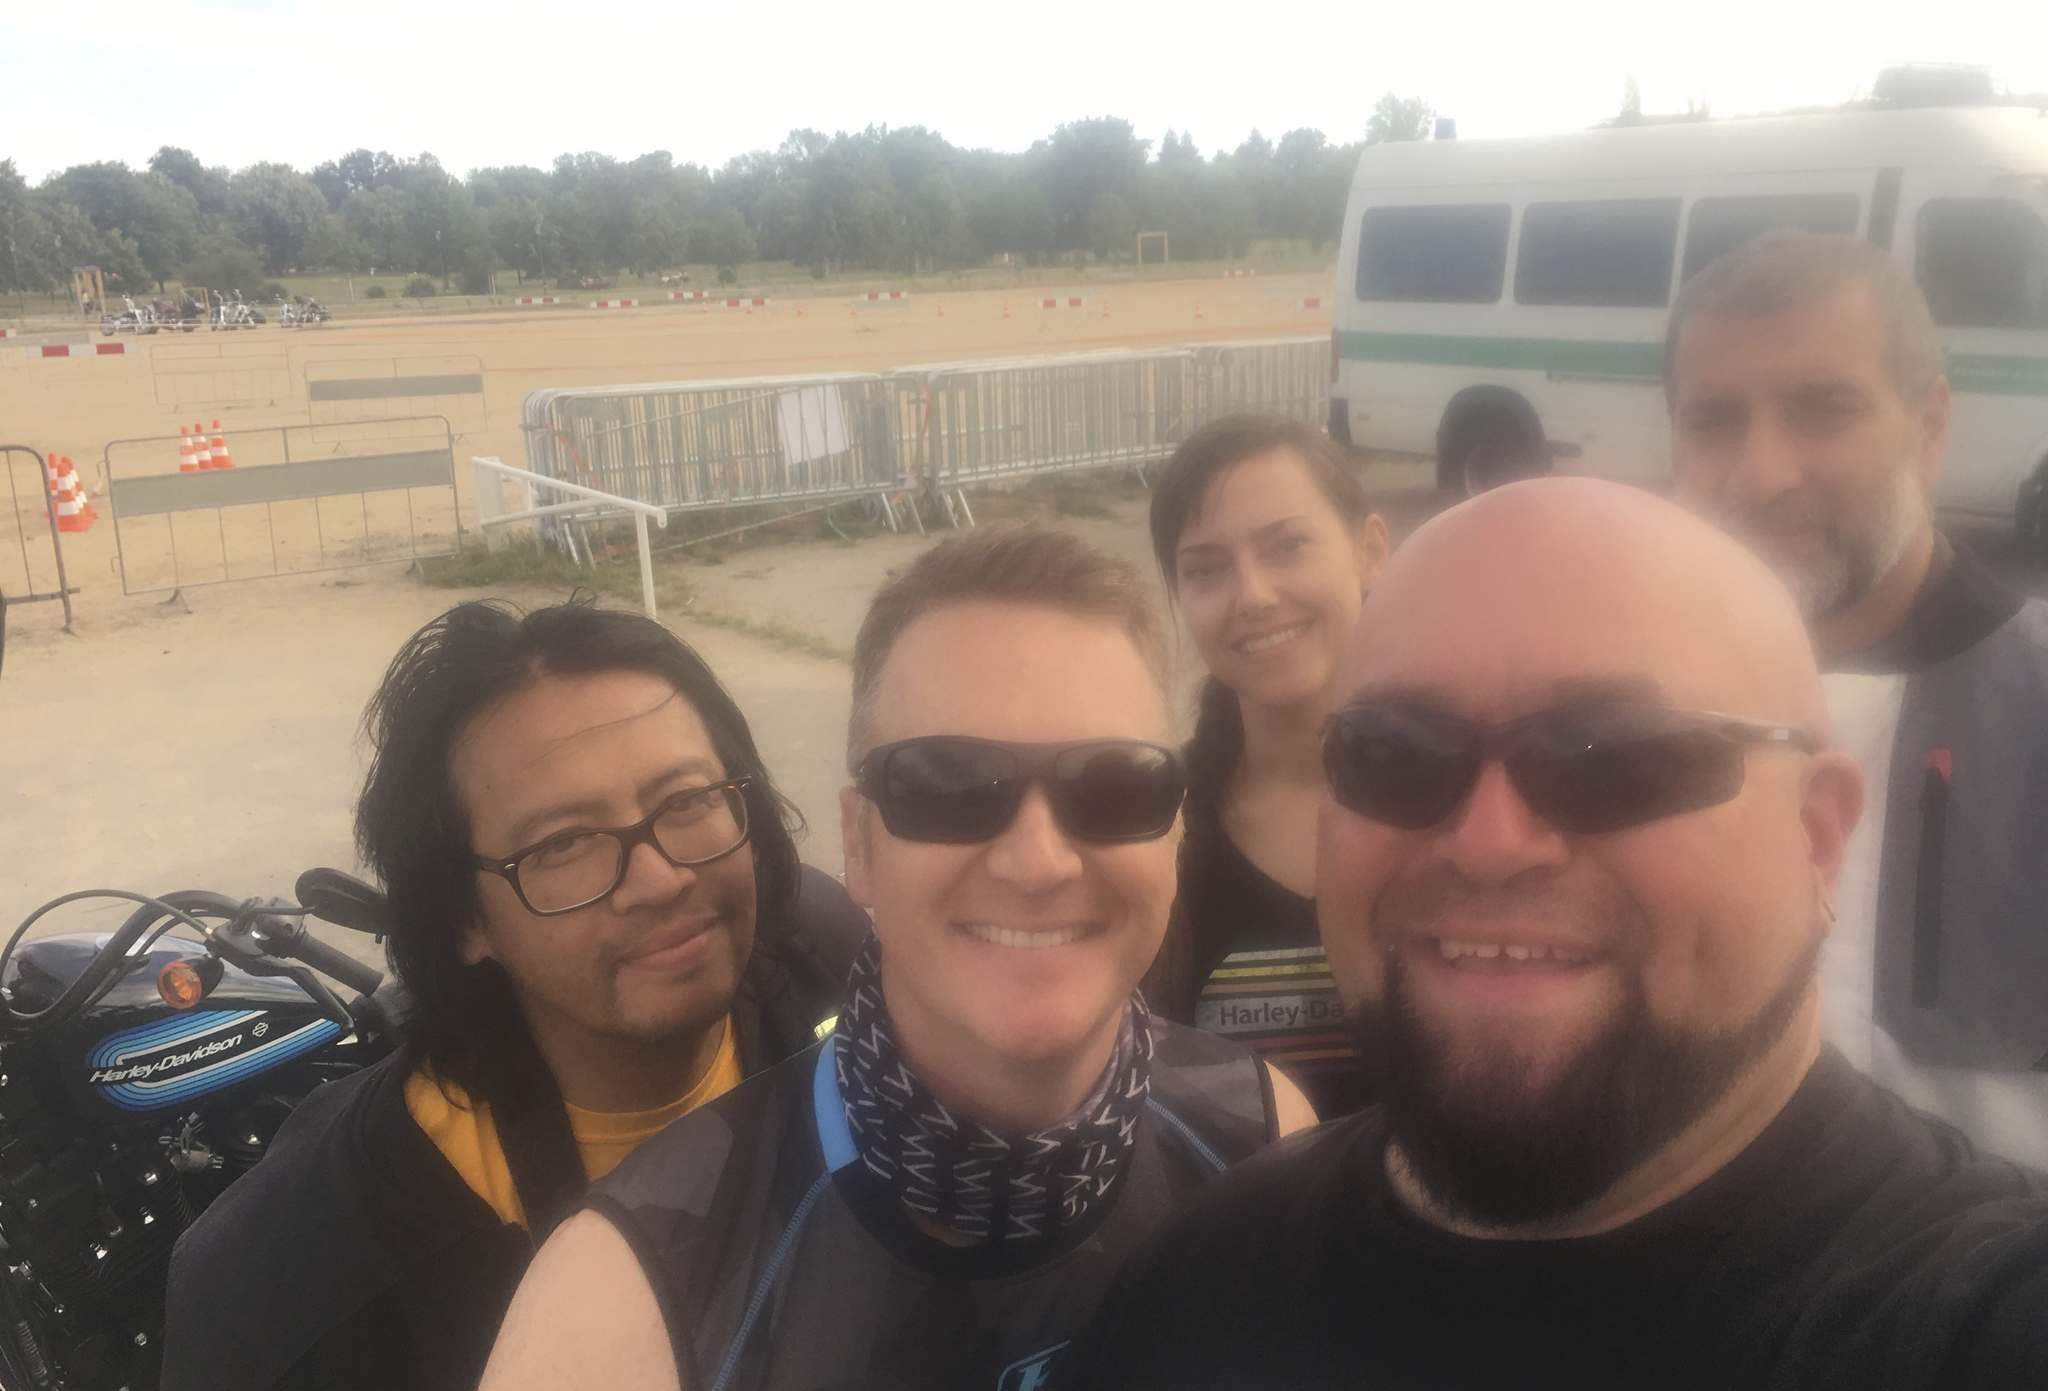 Willy Williamson / Winnipeg Free PressNo, he wasn't trying to get artistic with us, apparently Willy had sunscreen on his iPhone when he shot this selfie with, from left, Mondo Lulu, Eric Menard, Karen Mayberry and Costa Mouzouris, after an adventure-filled ride in the Czech Republic.